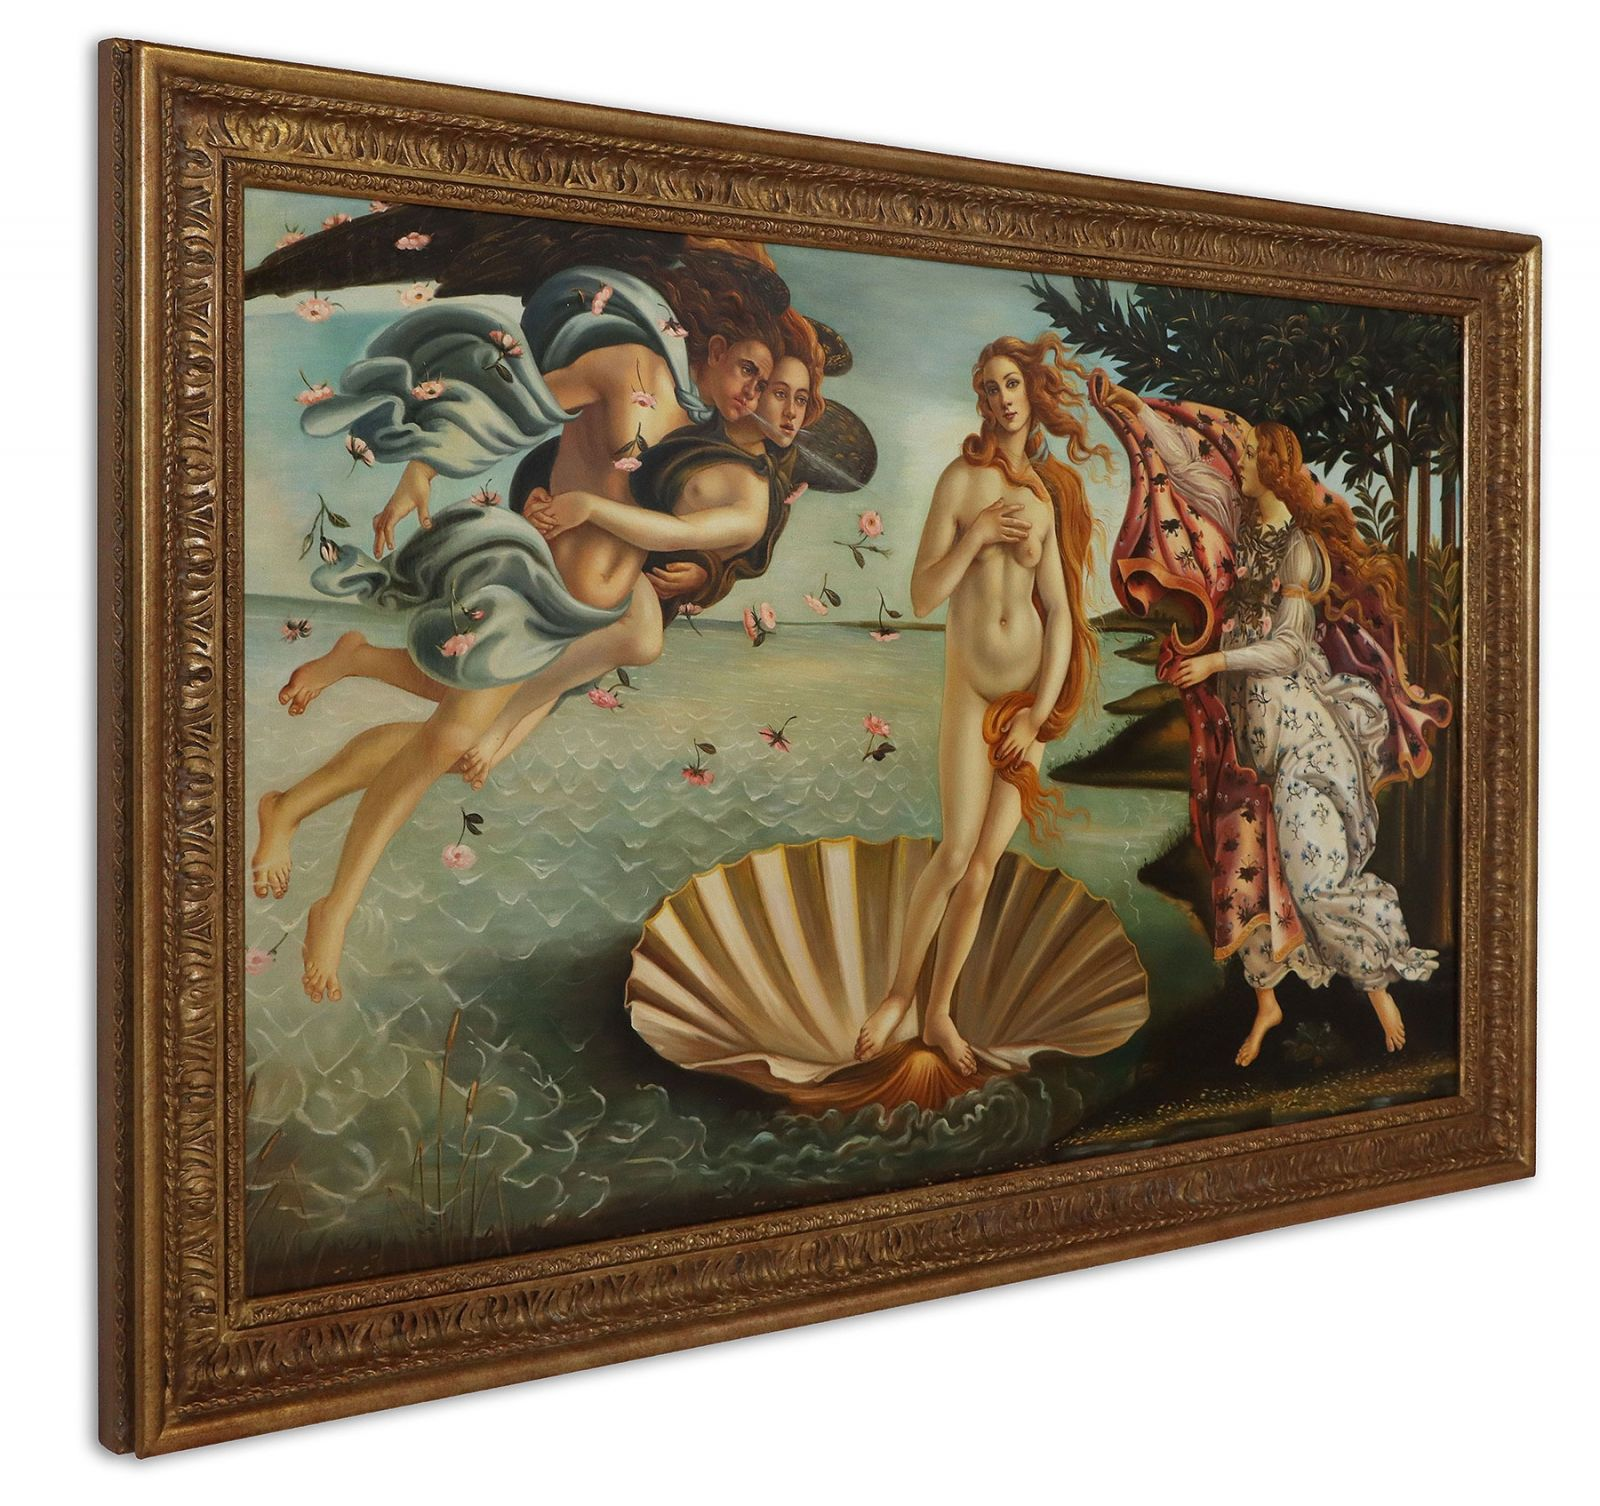 Oil painting after The Birth Of Venus by Sandro Botticelli